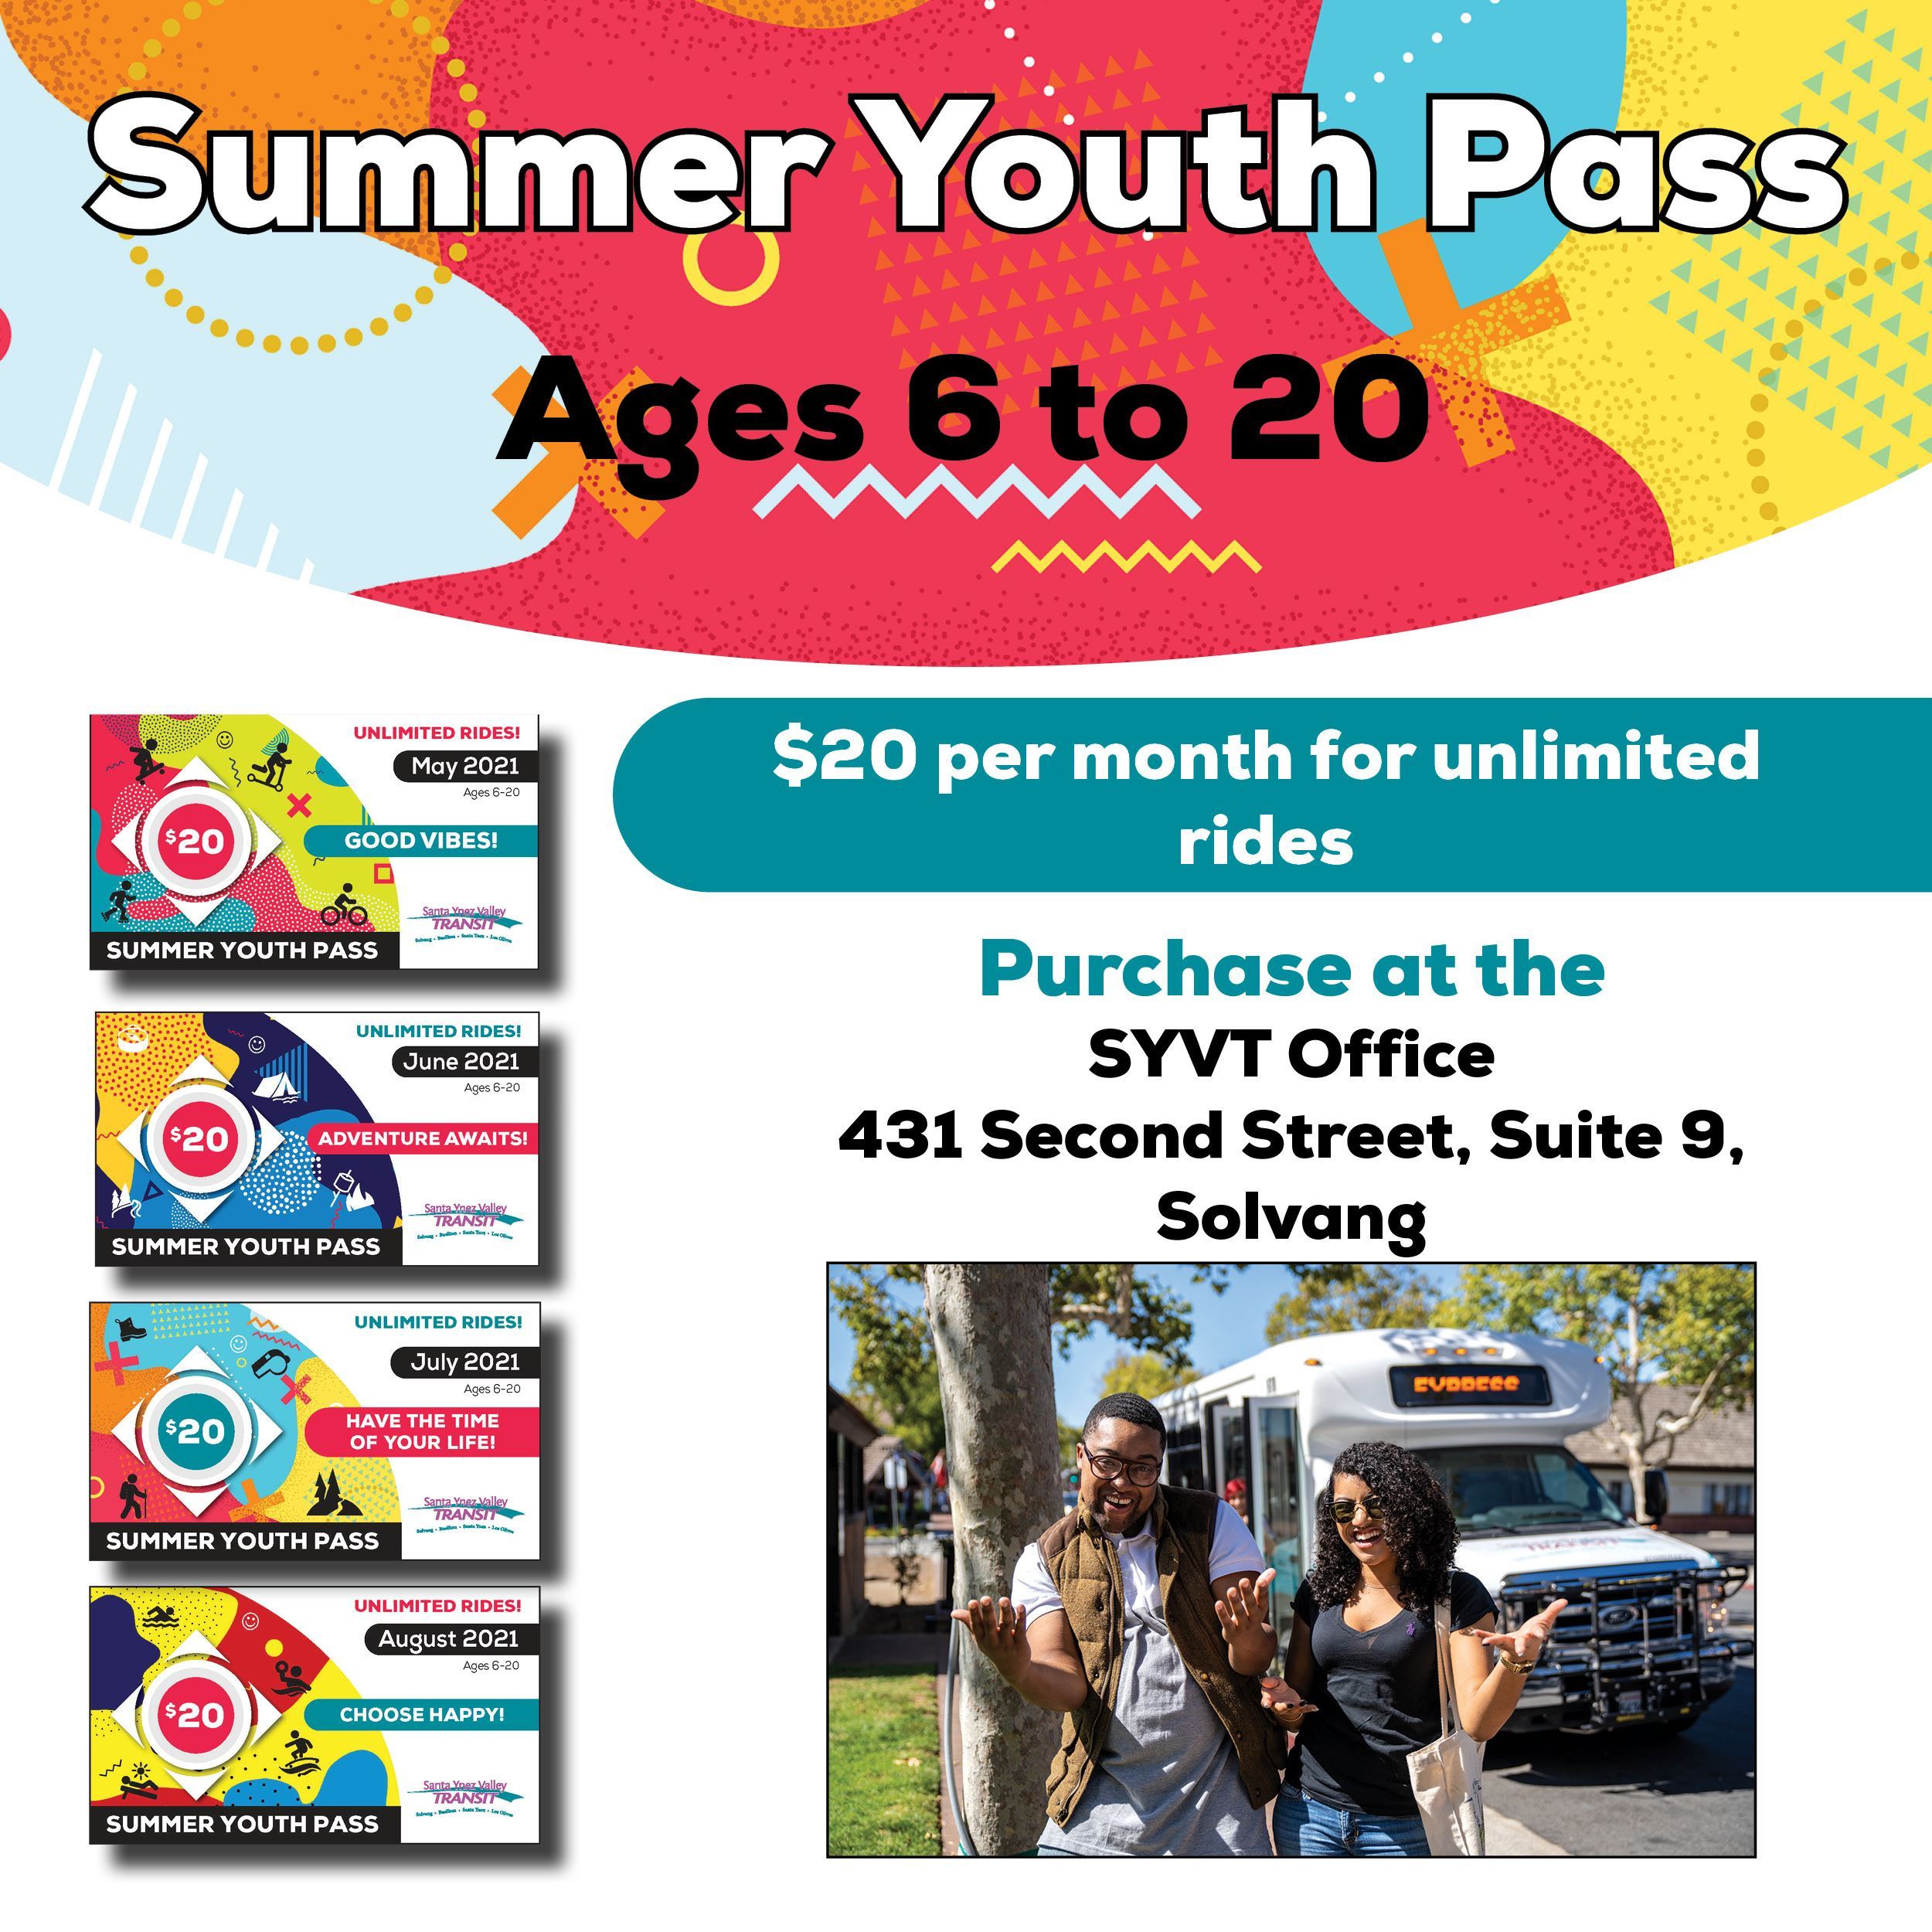 Summer Youth Pass available May, June, July and August for $20 per month